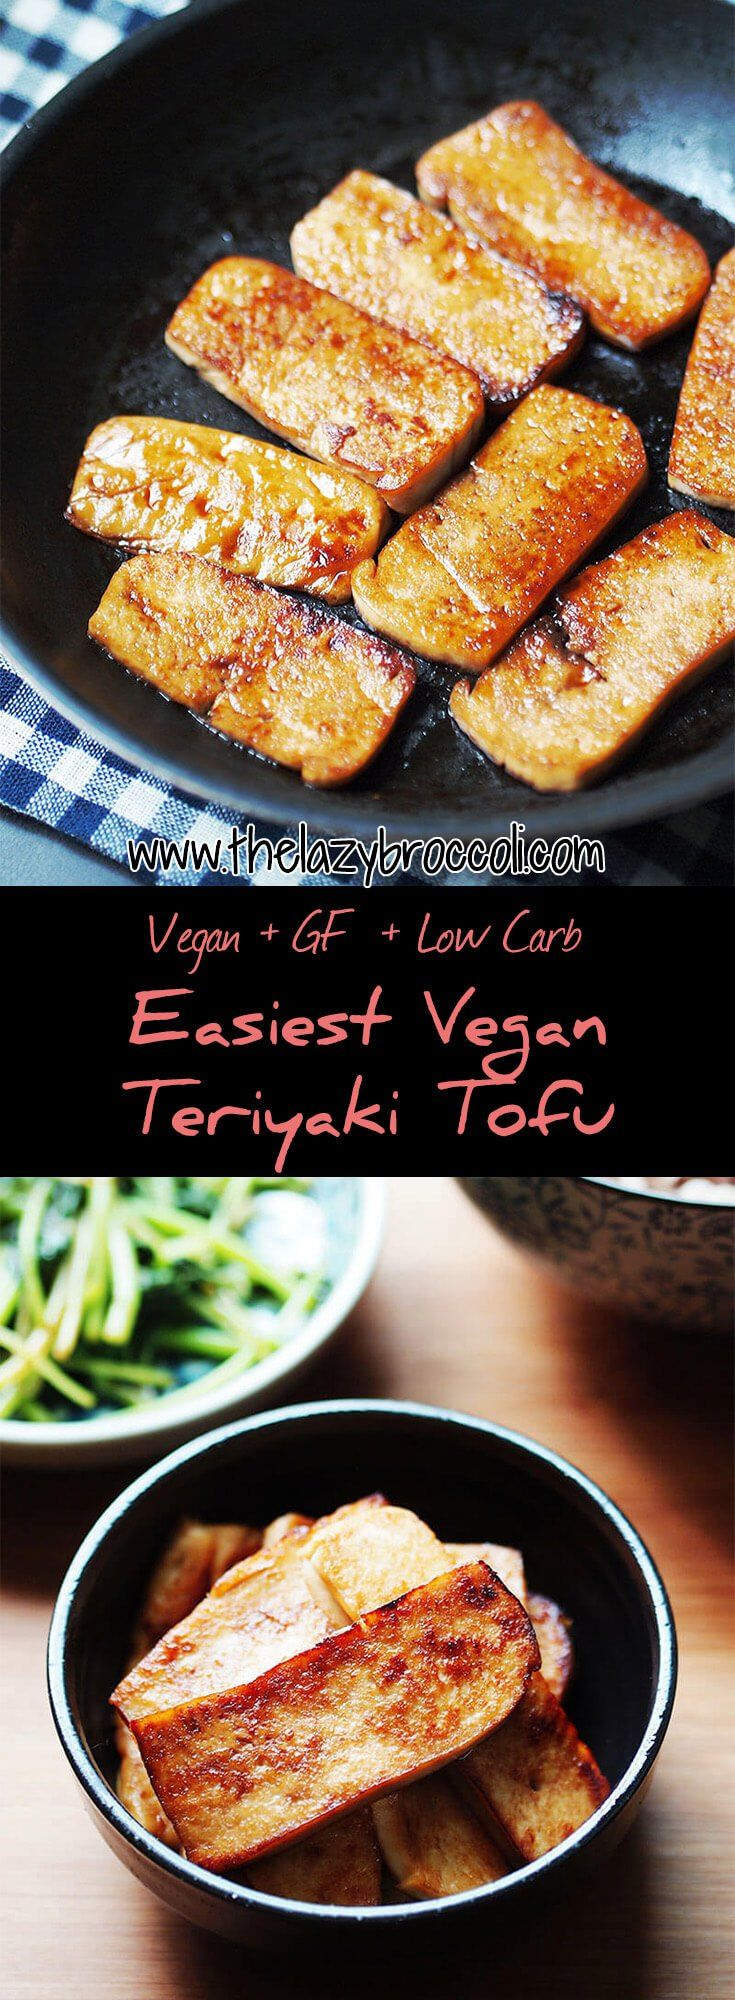 Easiest Vegan Teriyaki Tofu